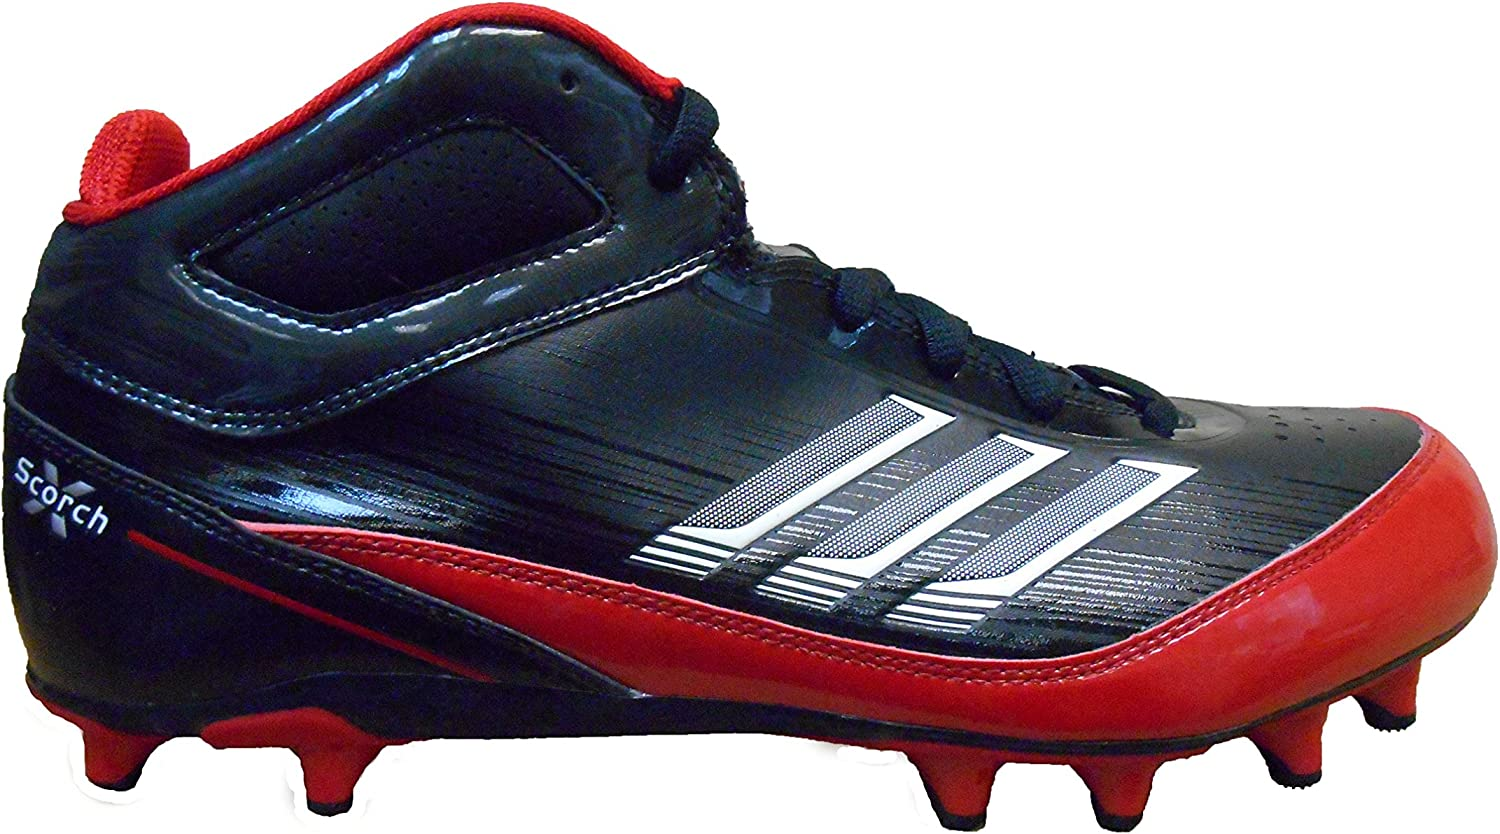 Adidas Men's AS SMU Scorch X Fly Mid NC Football Cleat